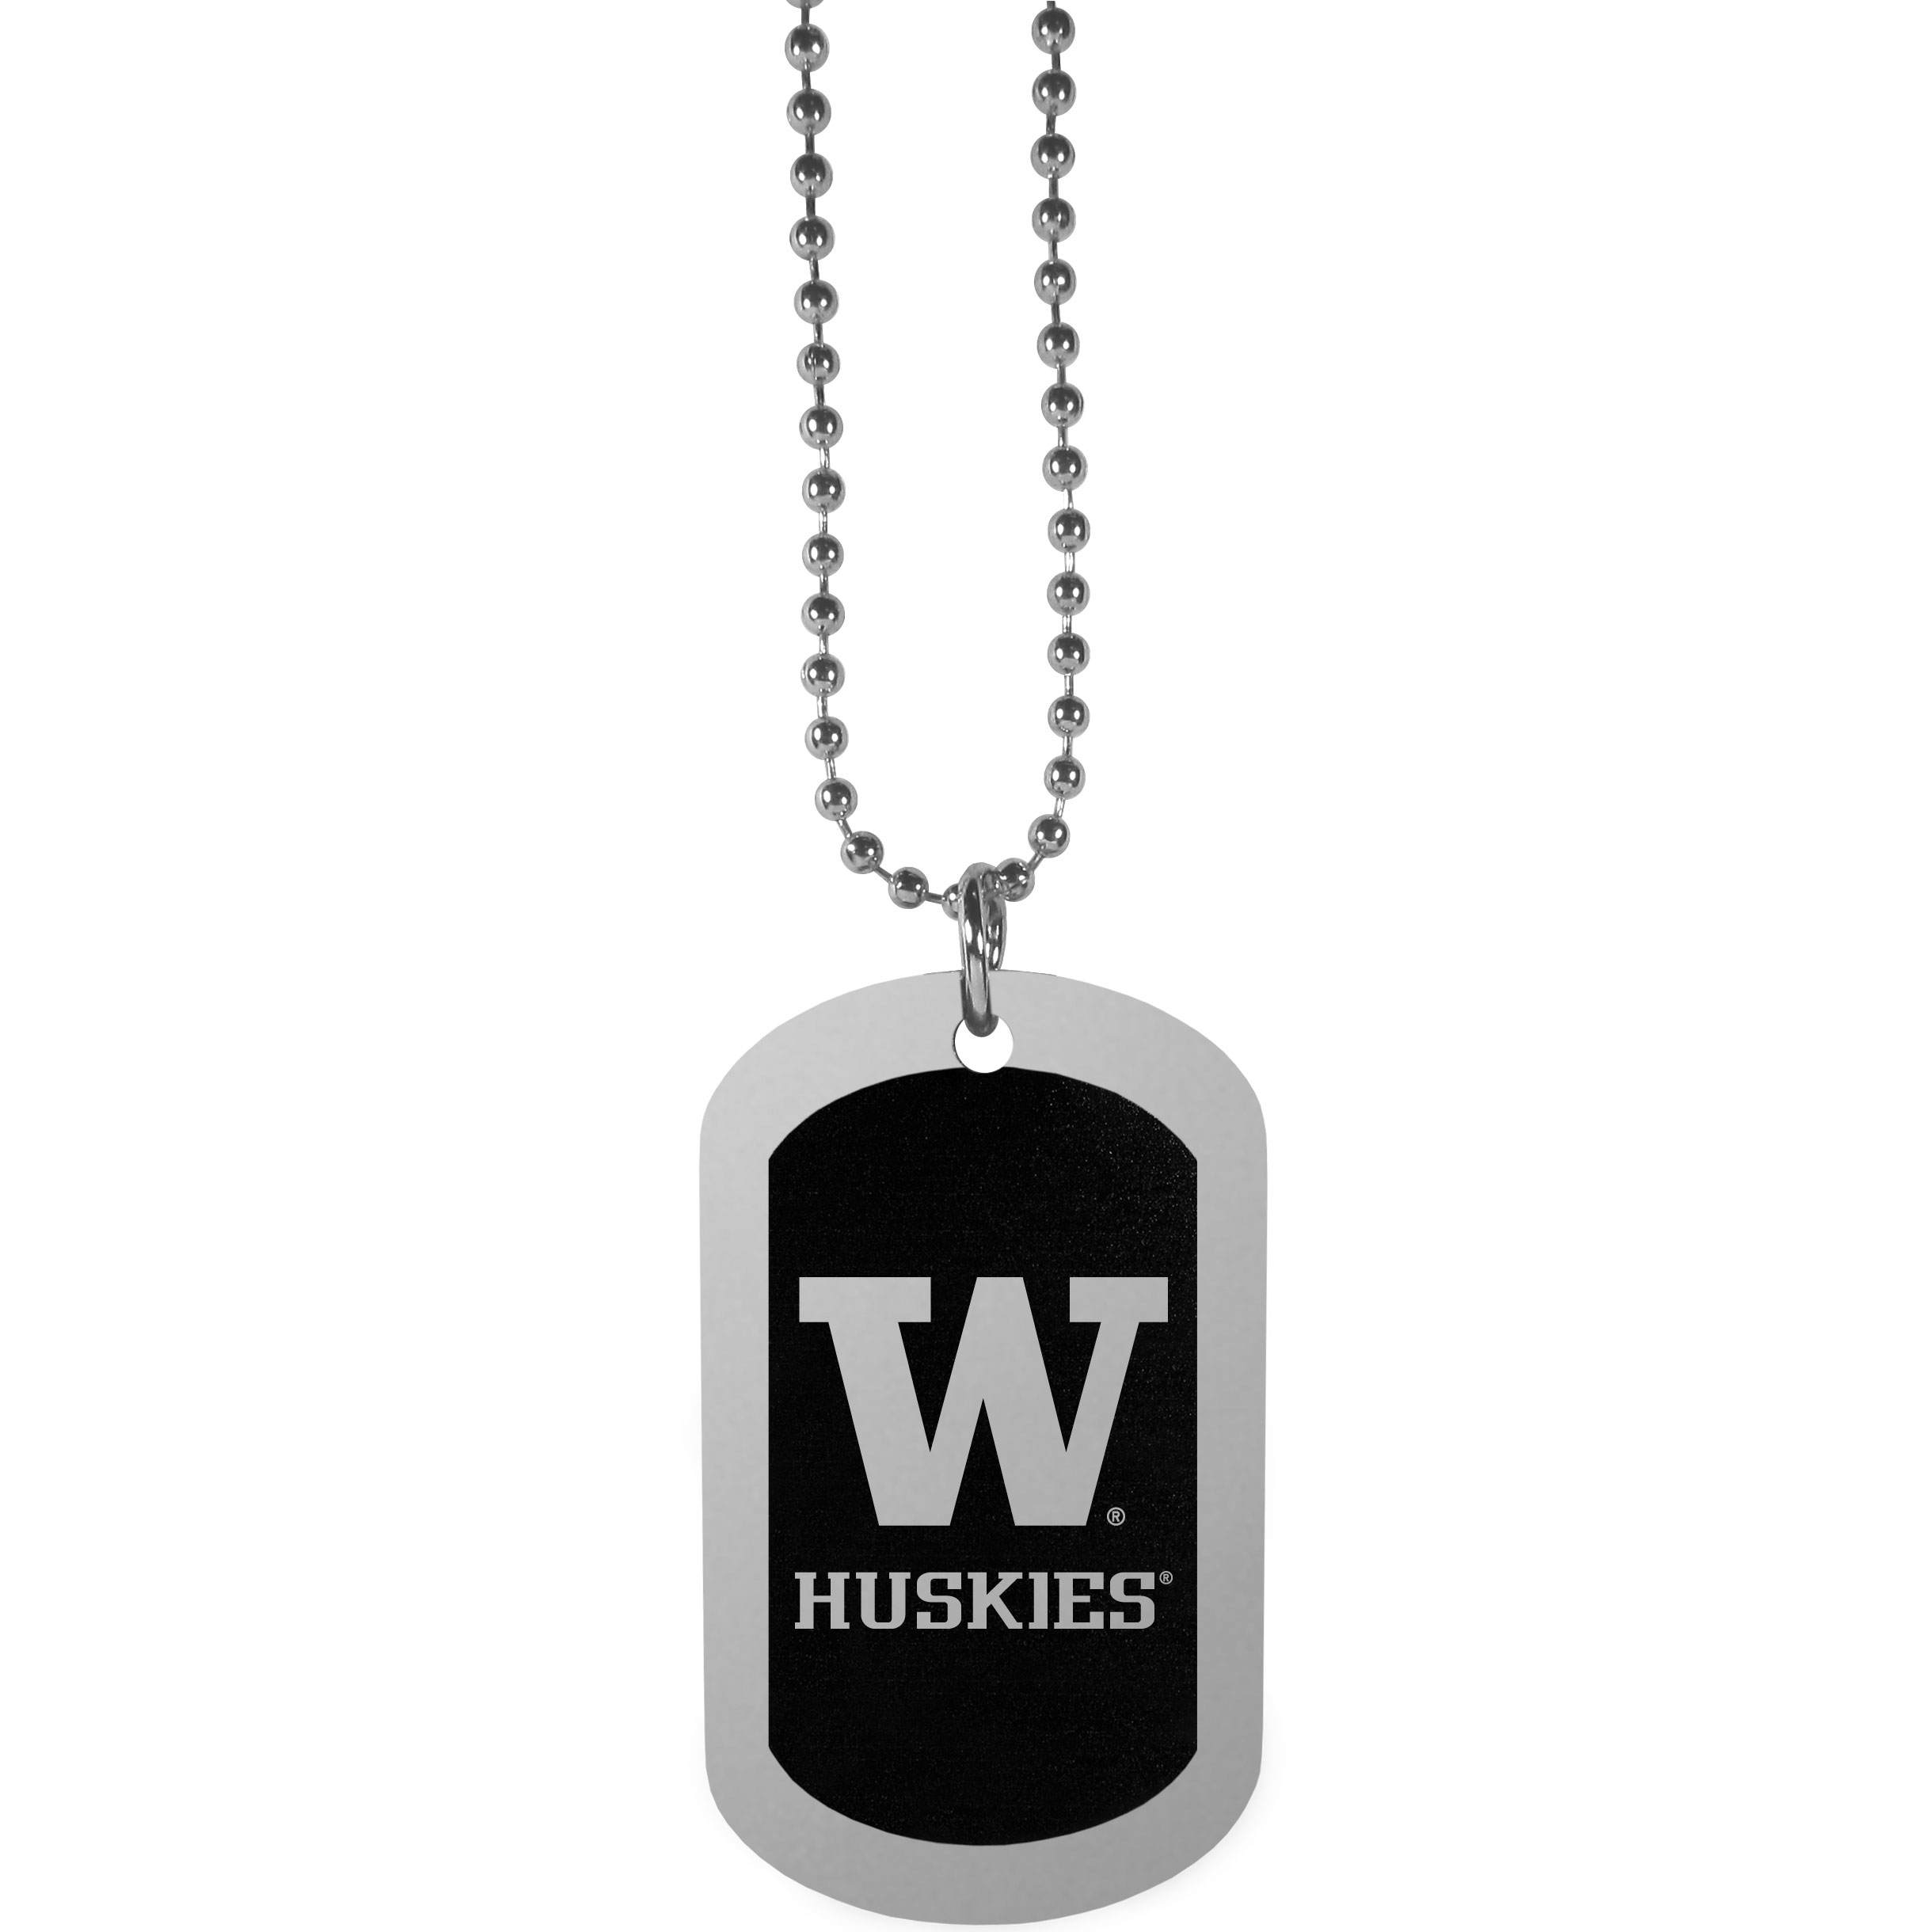 Washington Huskies Chrome Tag Necklace - Dog tag necklaces are a fashion statement that is here to stay. The sporty version of the classic tag features a black printed over a high polish tag to create a bold and sporty look. The tag comes on a 26 inch ball chain with a ball and joint clasp. Any Washington Huskies would be proud to wear this attractive fashion accessory.